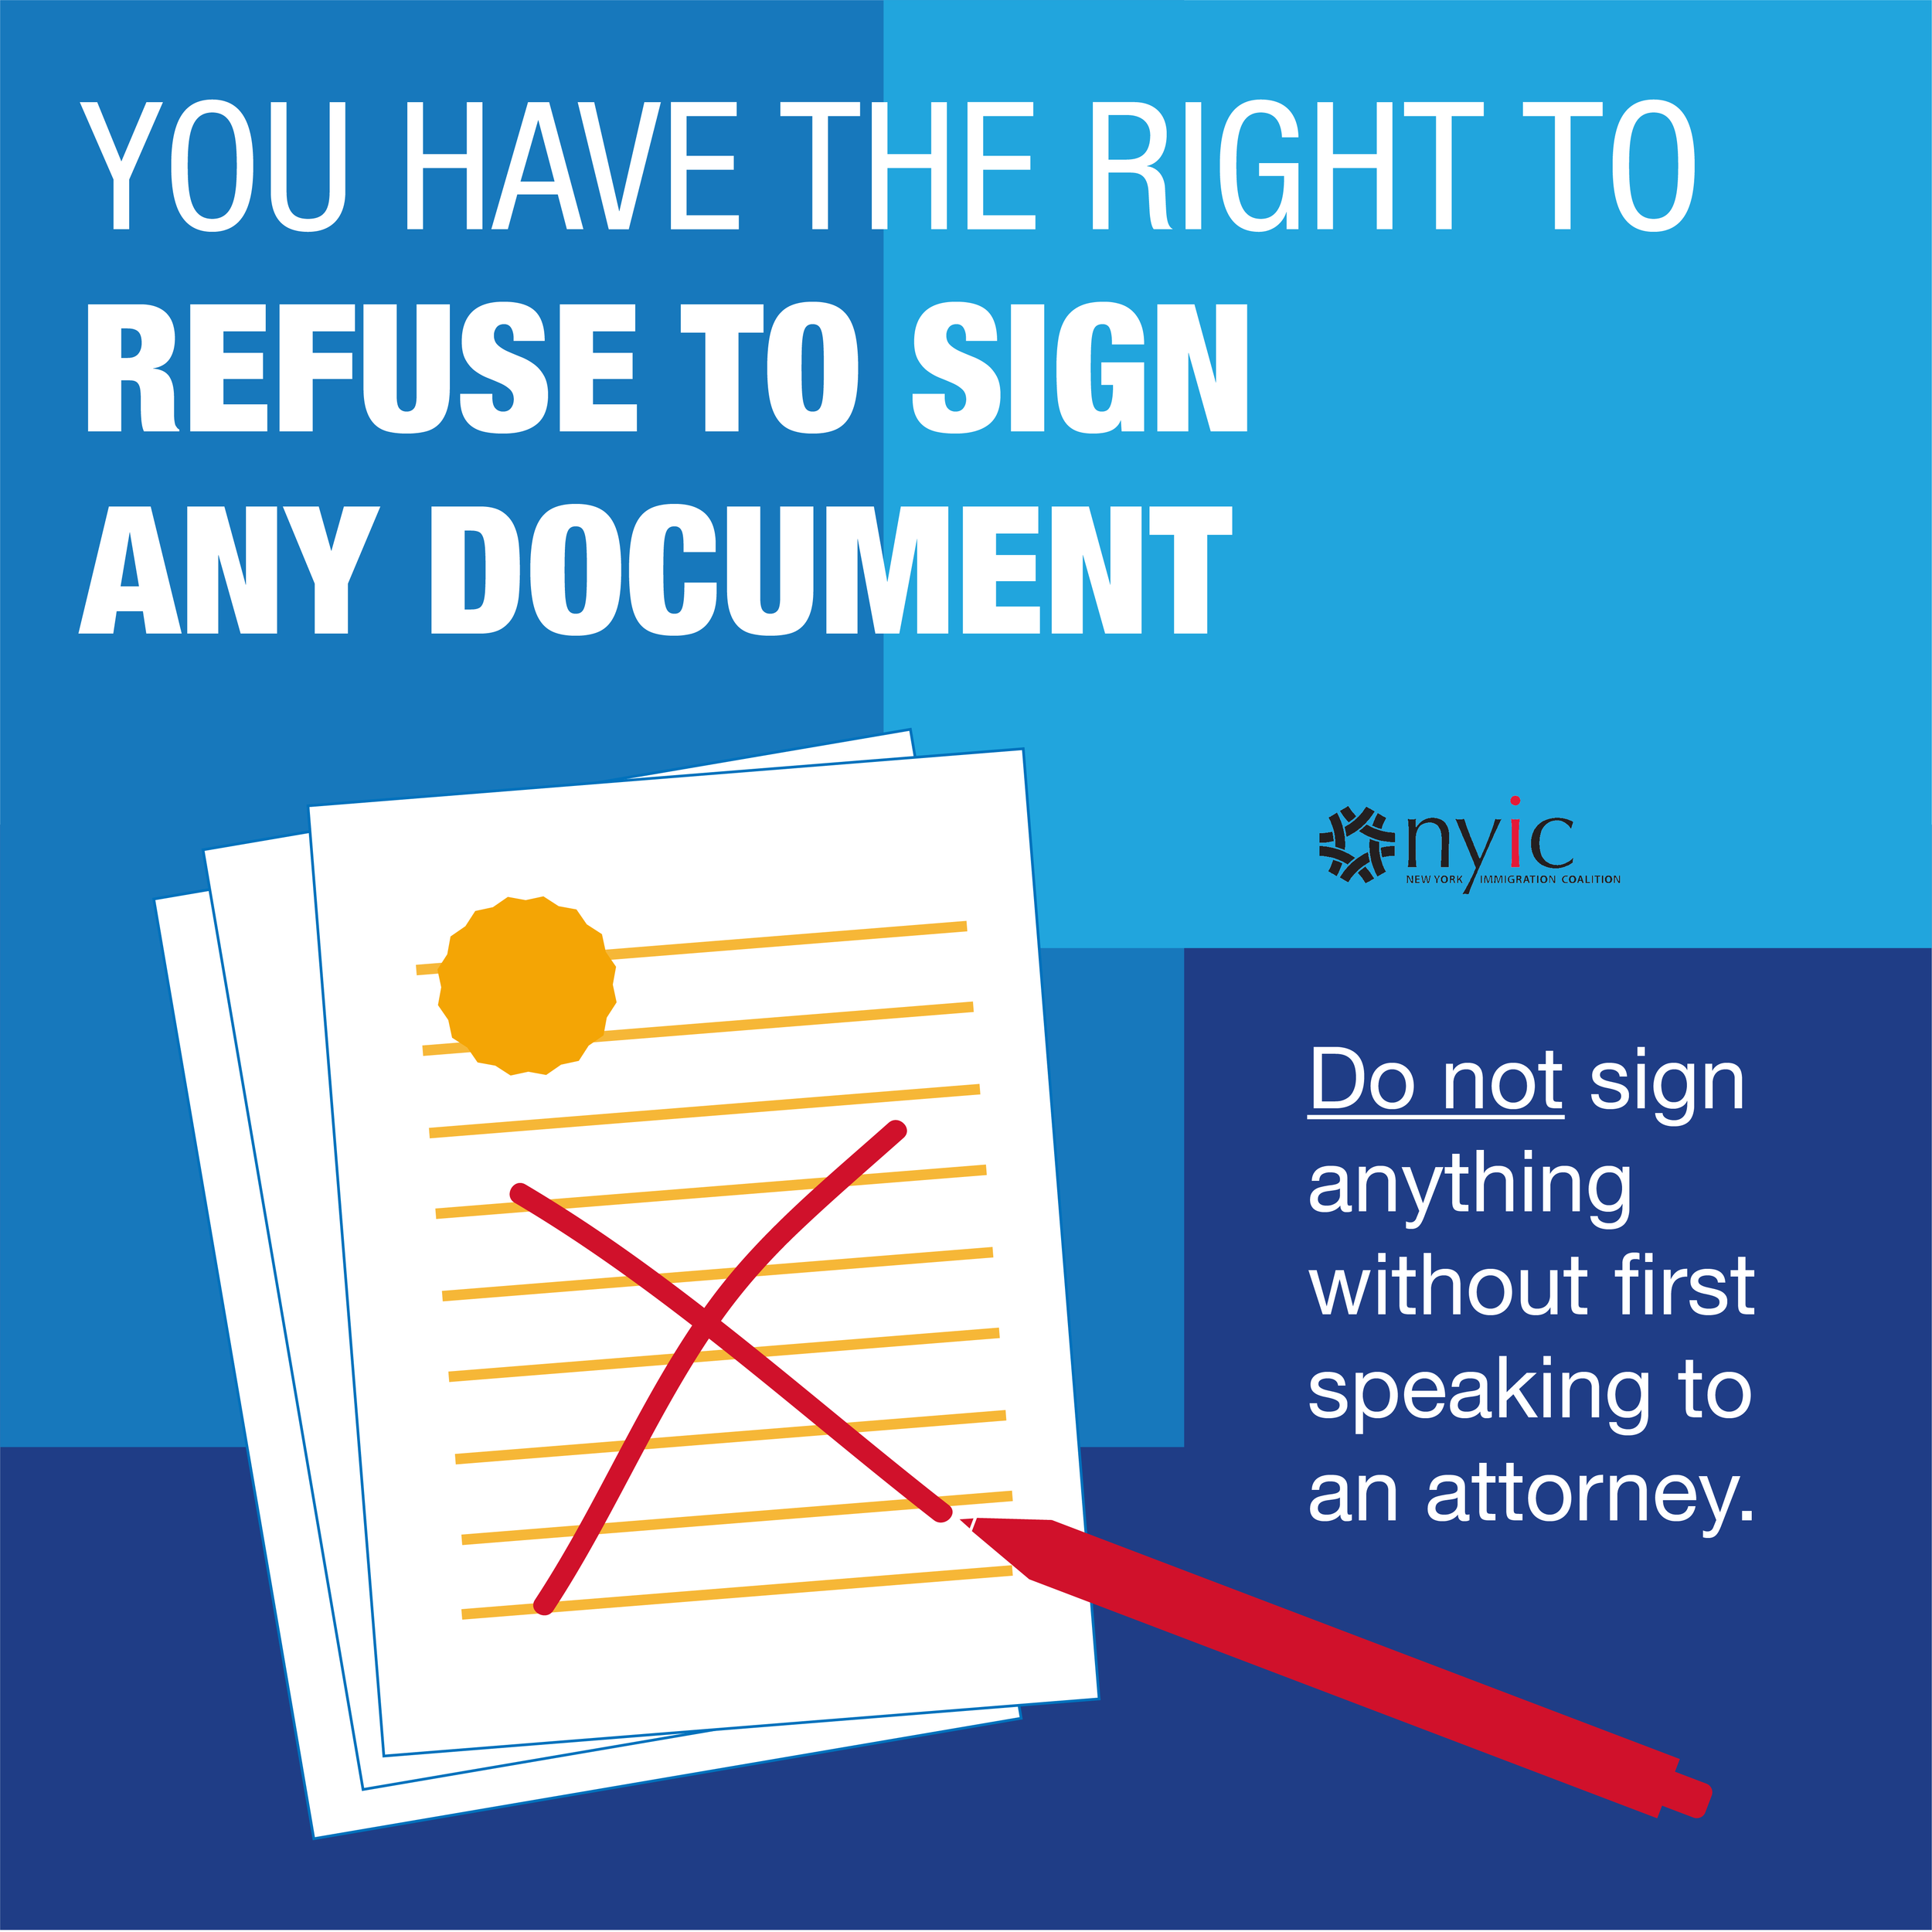 NYIC Graphic Know your rights_Refuse Sign.png